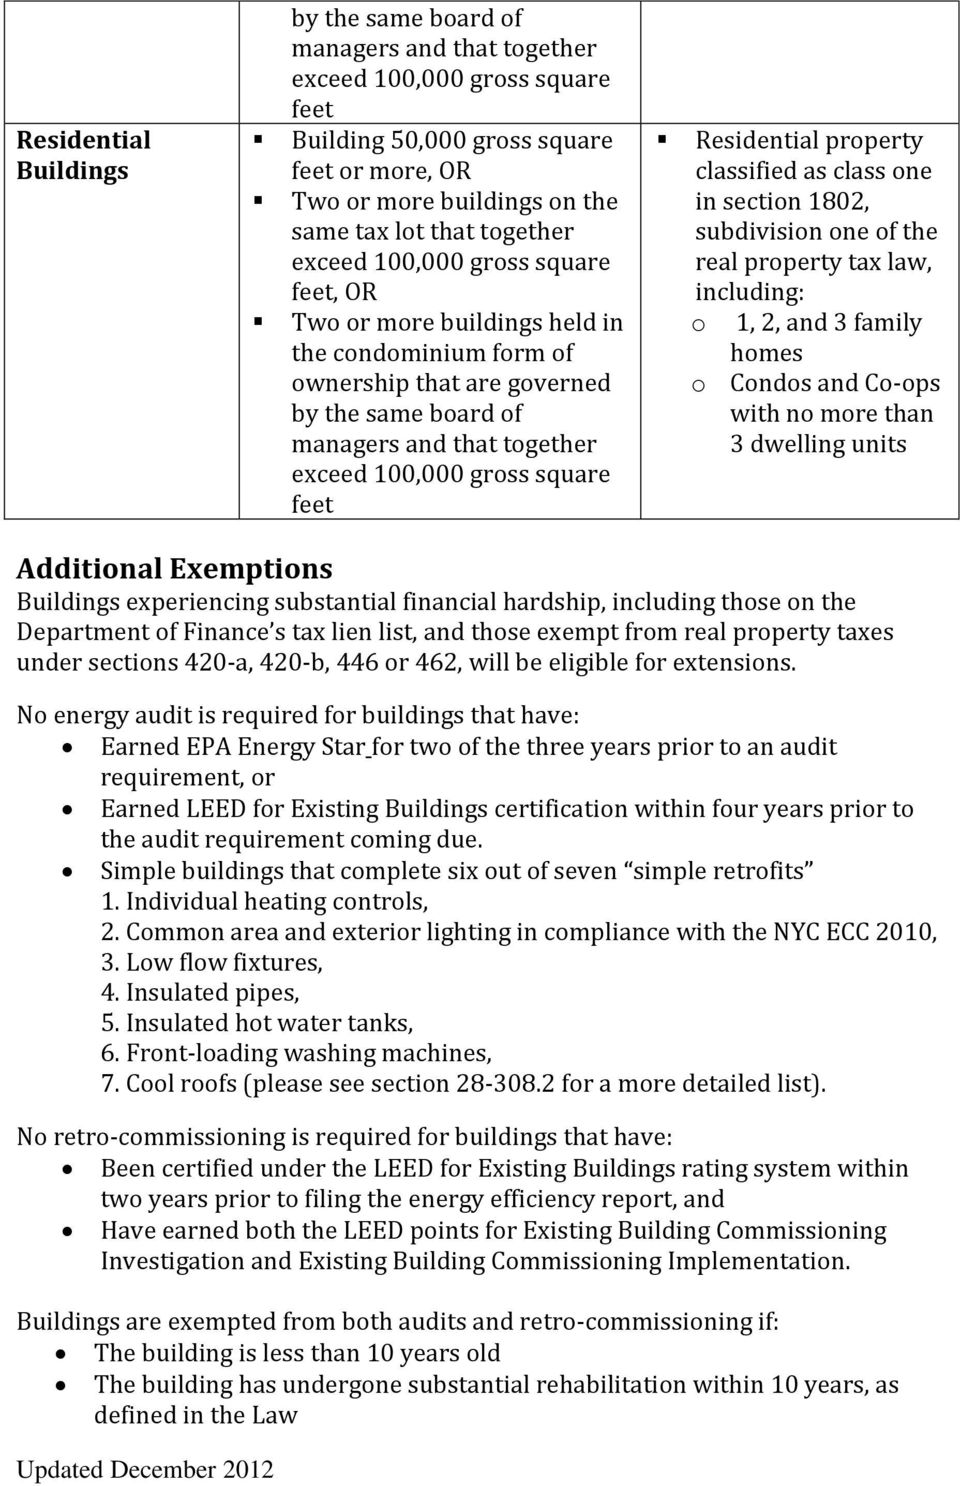 one of the real property tax law, including: o 1, 2, and 3 family homes o Condos and Co-ops with no more than 3 dwelling units Additional Exemptions Buildings experiencing substantial financial